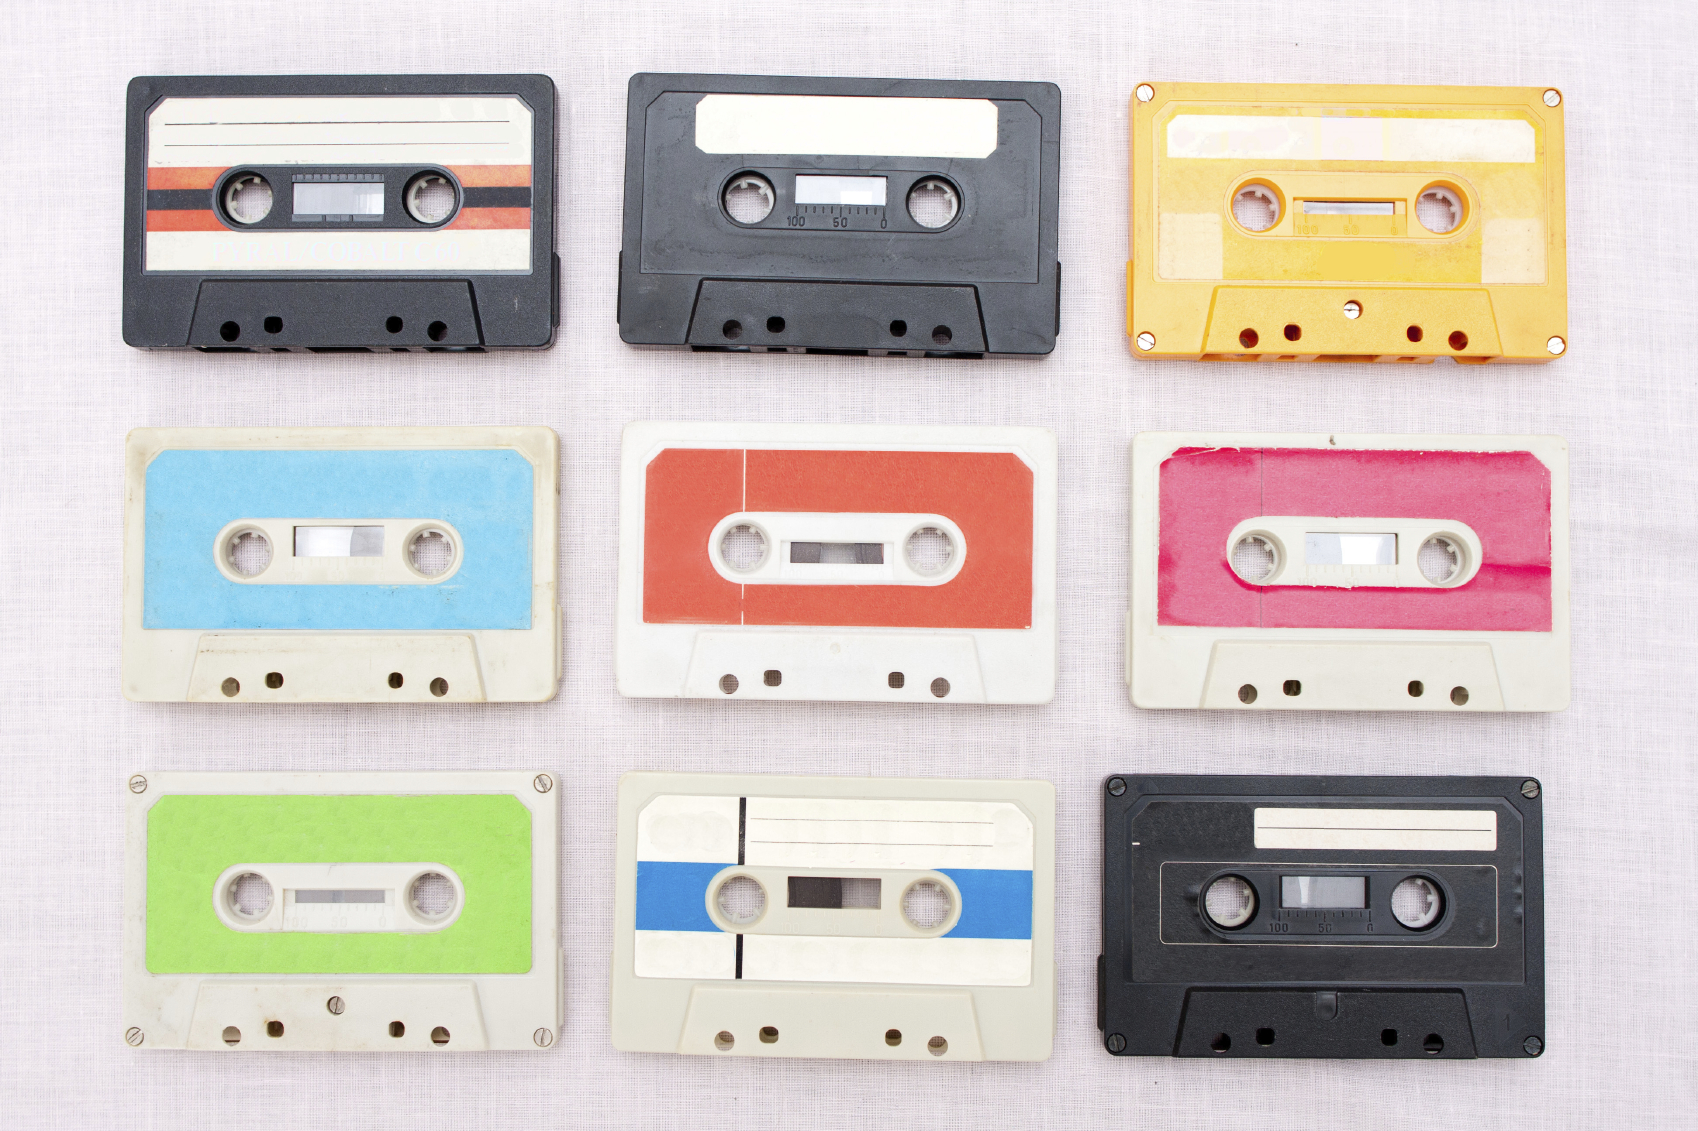 Casette Tapes, iStock 2015, Generations in the Workplace